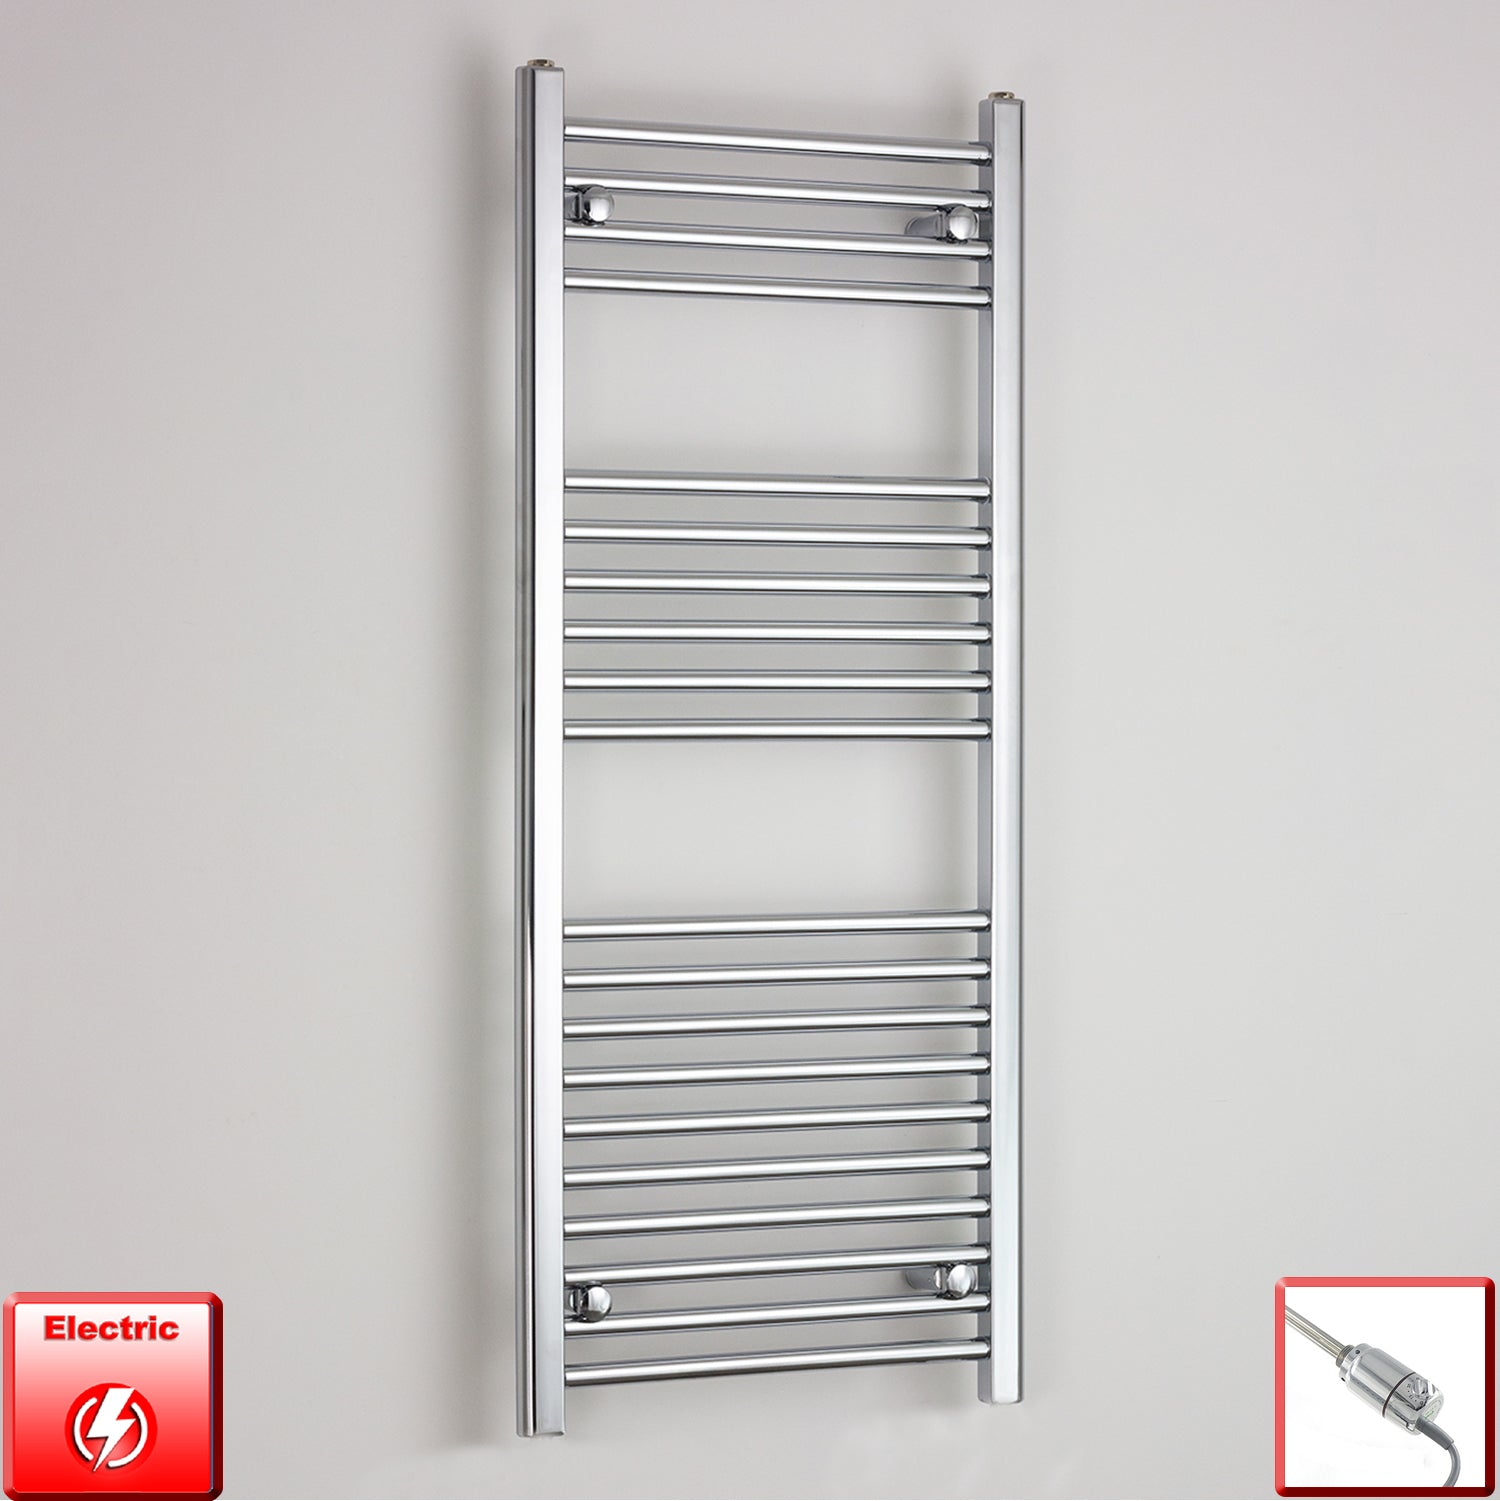 500mm Wide 1200mm High Flat Or Curved Chrome Pre-Filled Electric Heated Towel Rail Radiator HTR